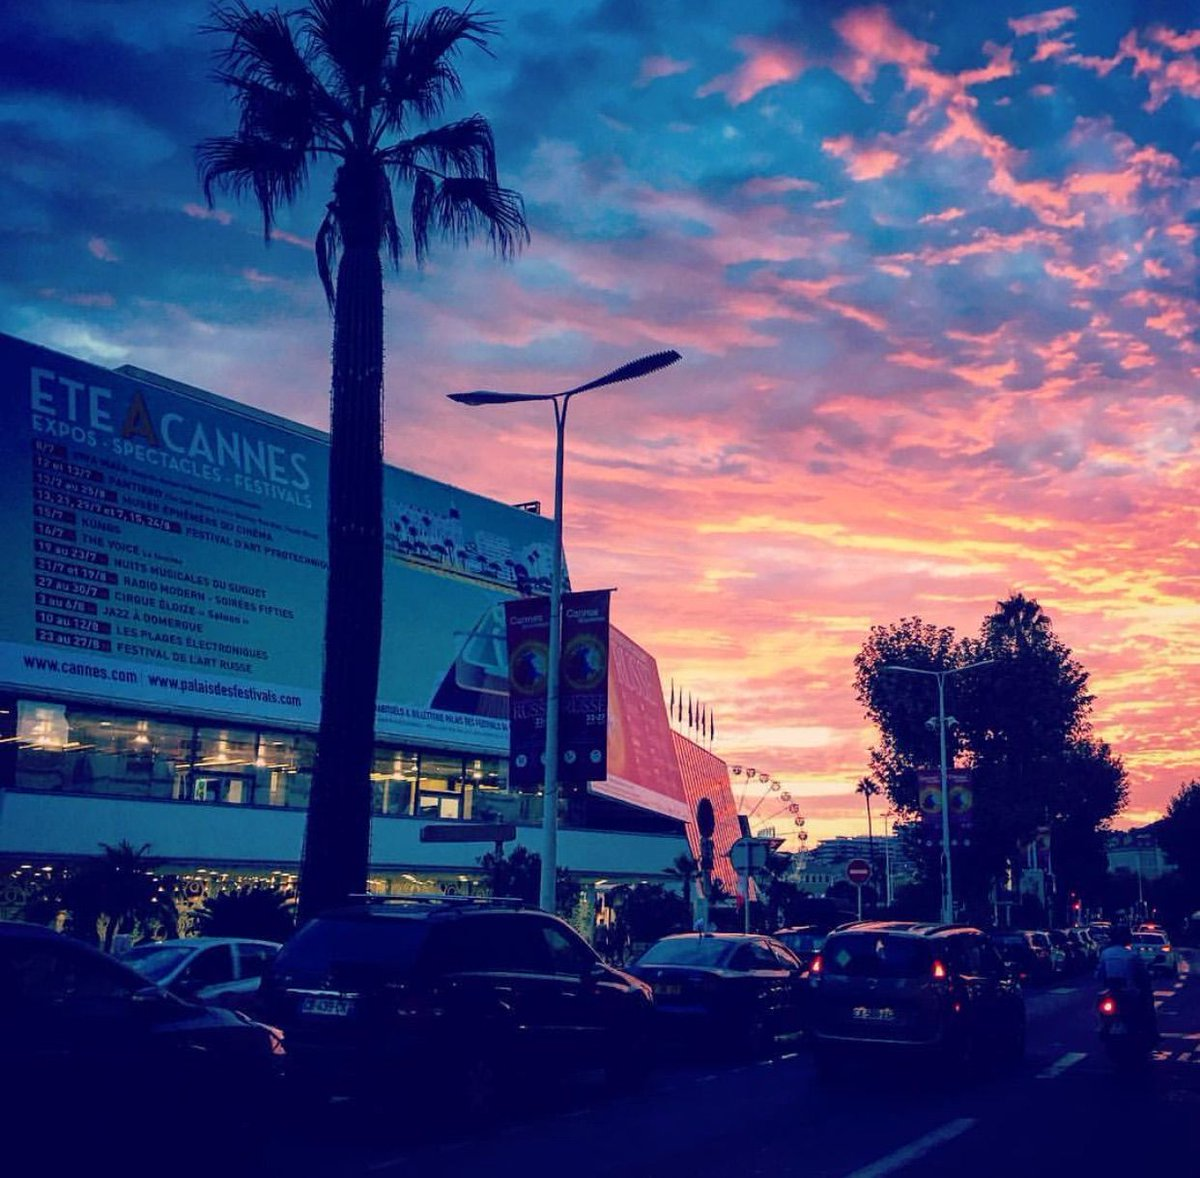 Summer sunset at the Palais !  #Cannes #CotedAzurFrance   stephji<br>http://pic.twitter.com/BoaTbkmU7R